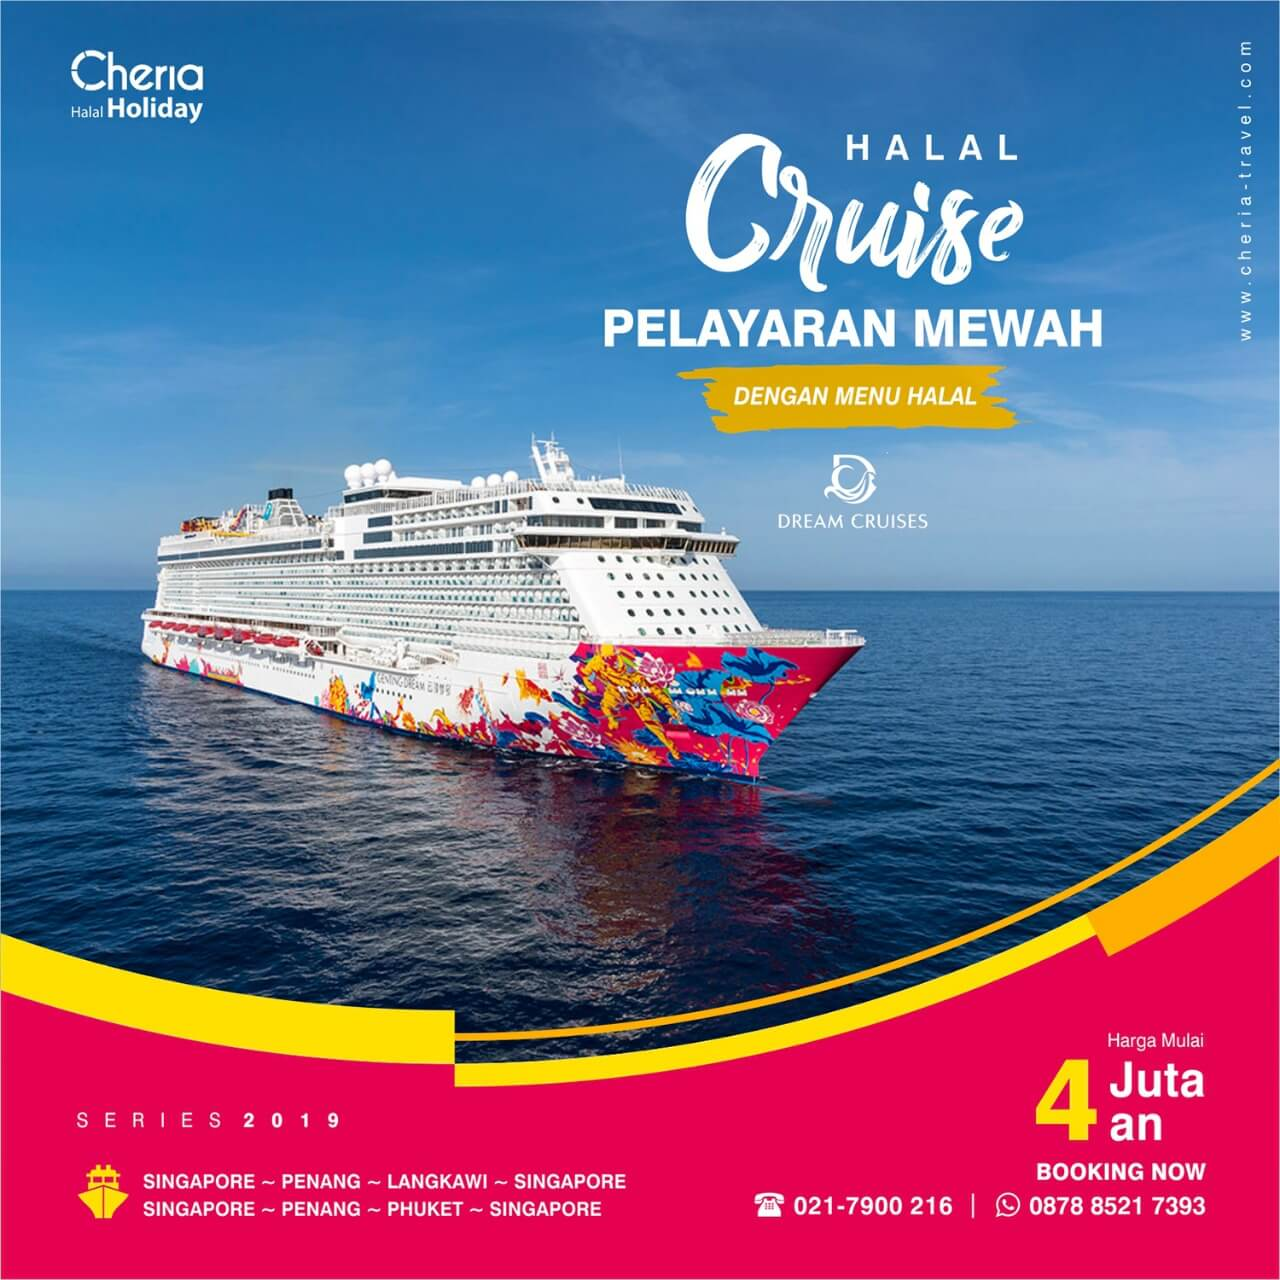 Paket Tour Halal Cruise Cheria Holiday